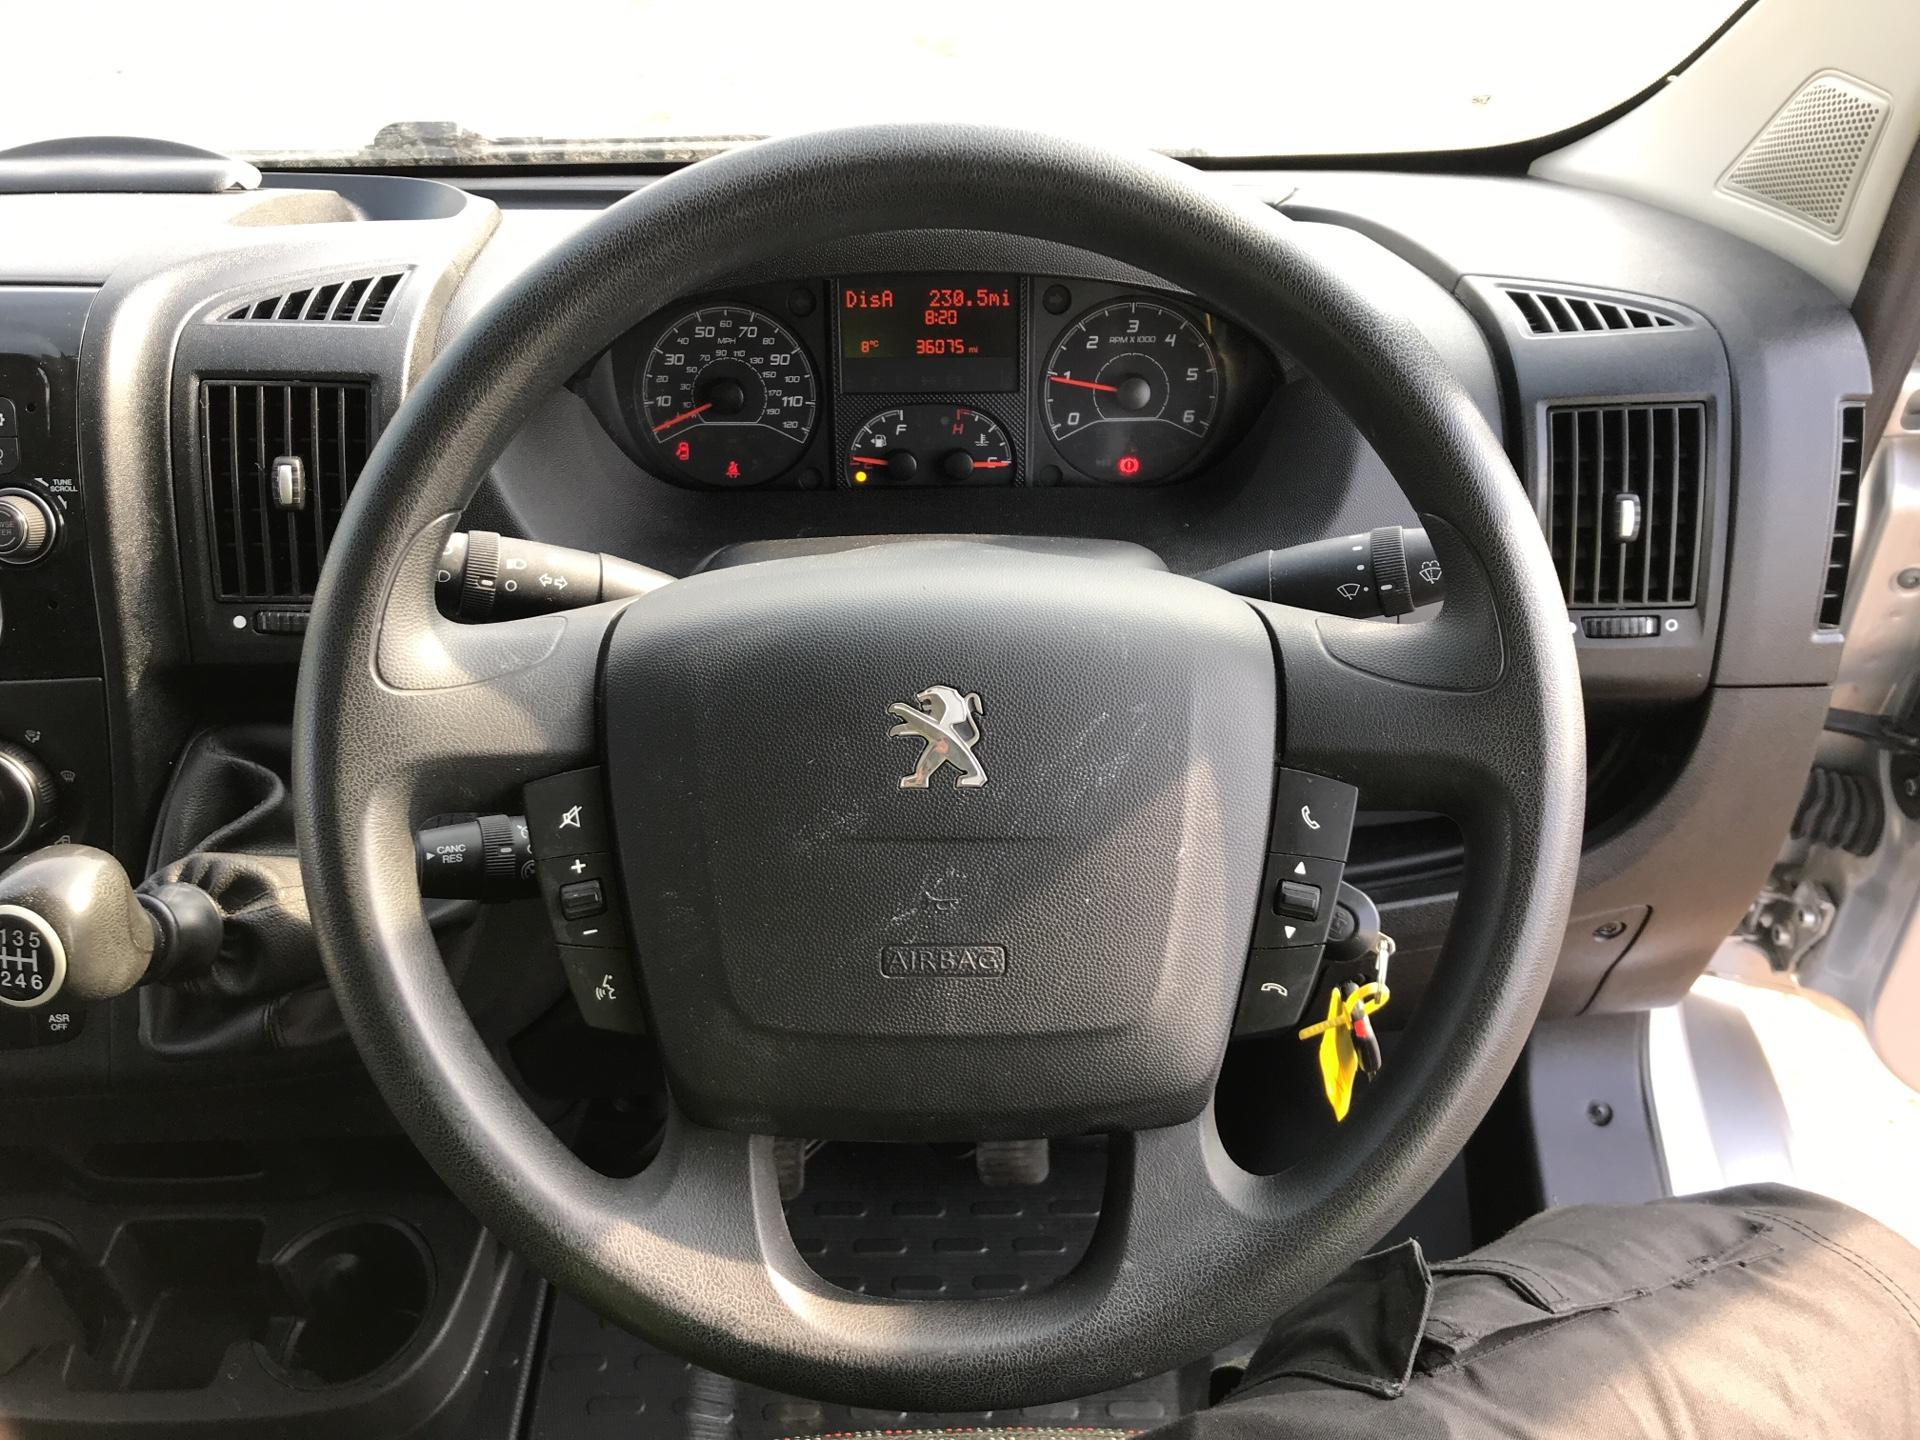 2016 Peugeot Boxer 2.0 Bluehdi H1  Professional Van 110Ps *VALUE RANGE VEHICLE CONDITION REFLECTED IN PRICE* (NG16NMO) Image 12